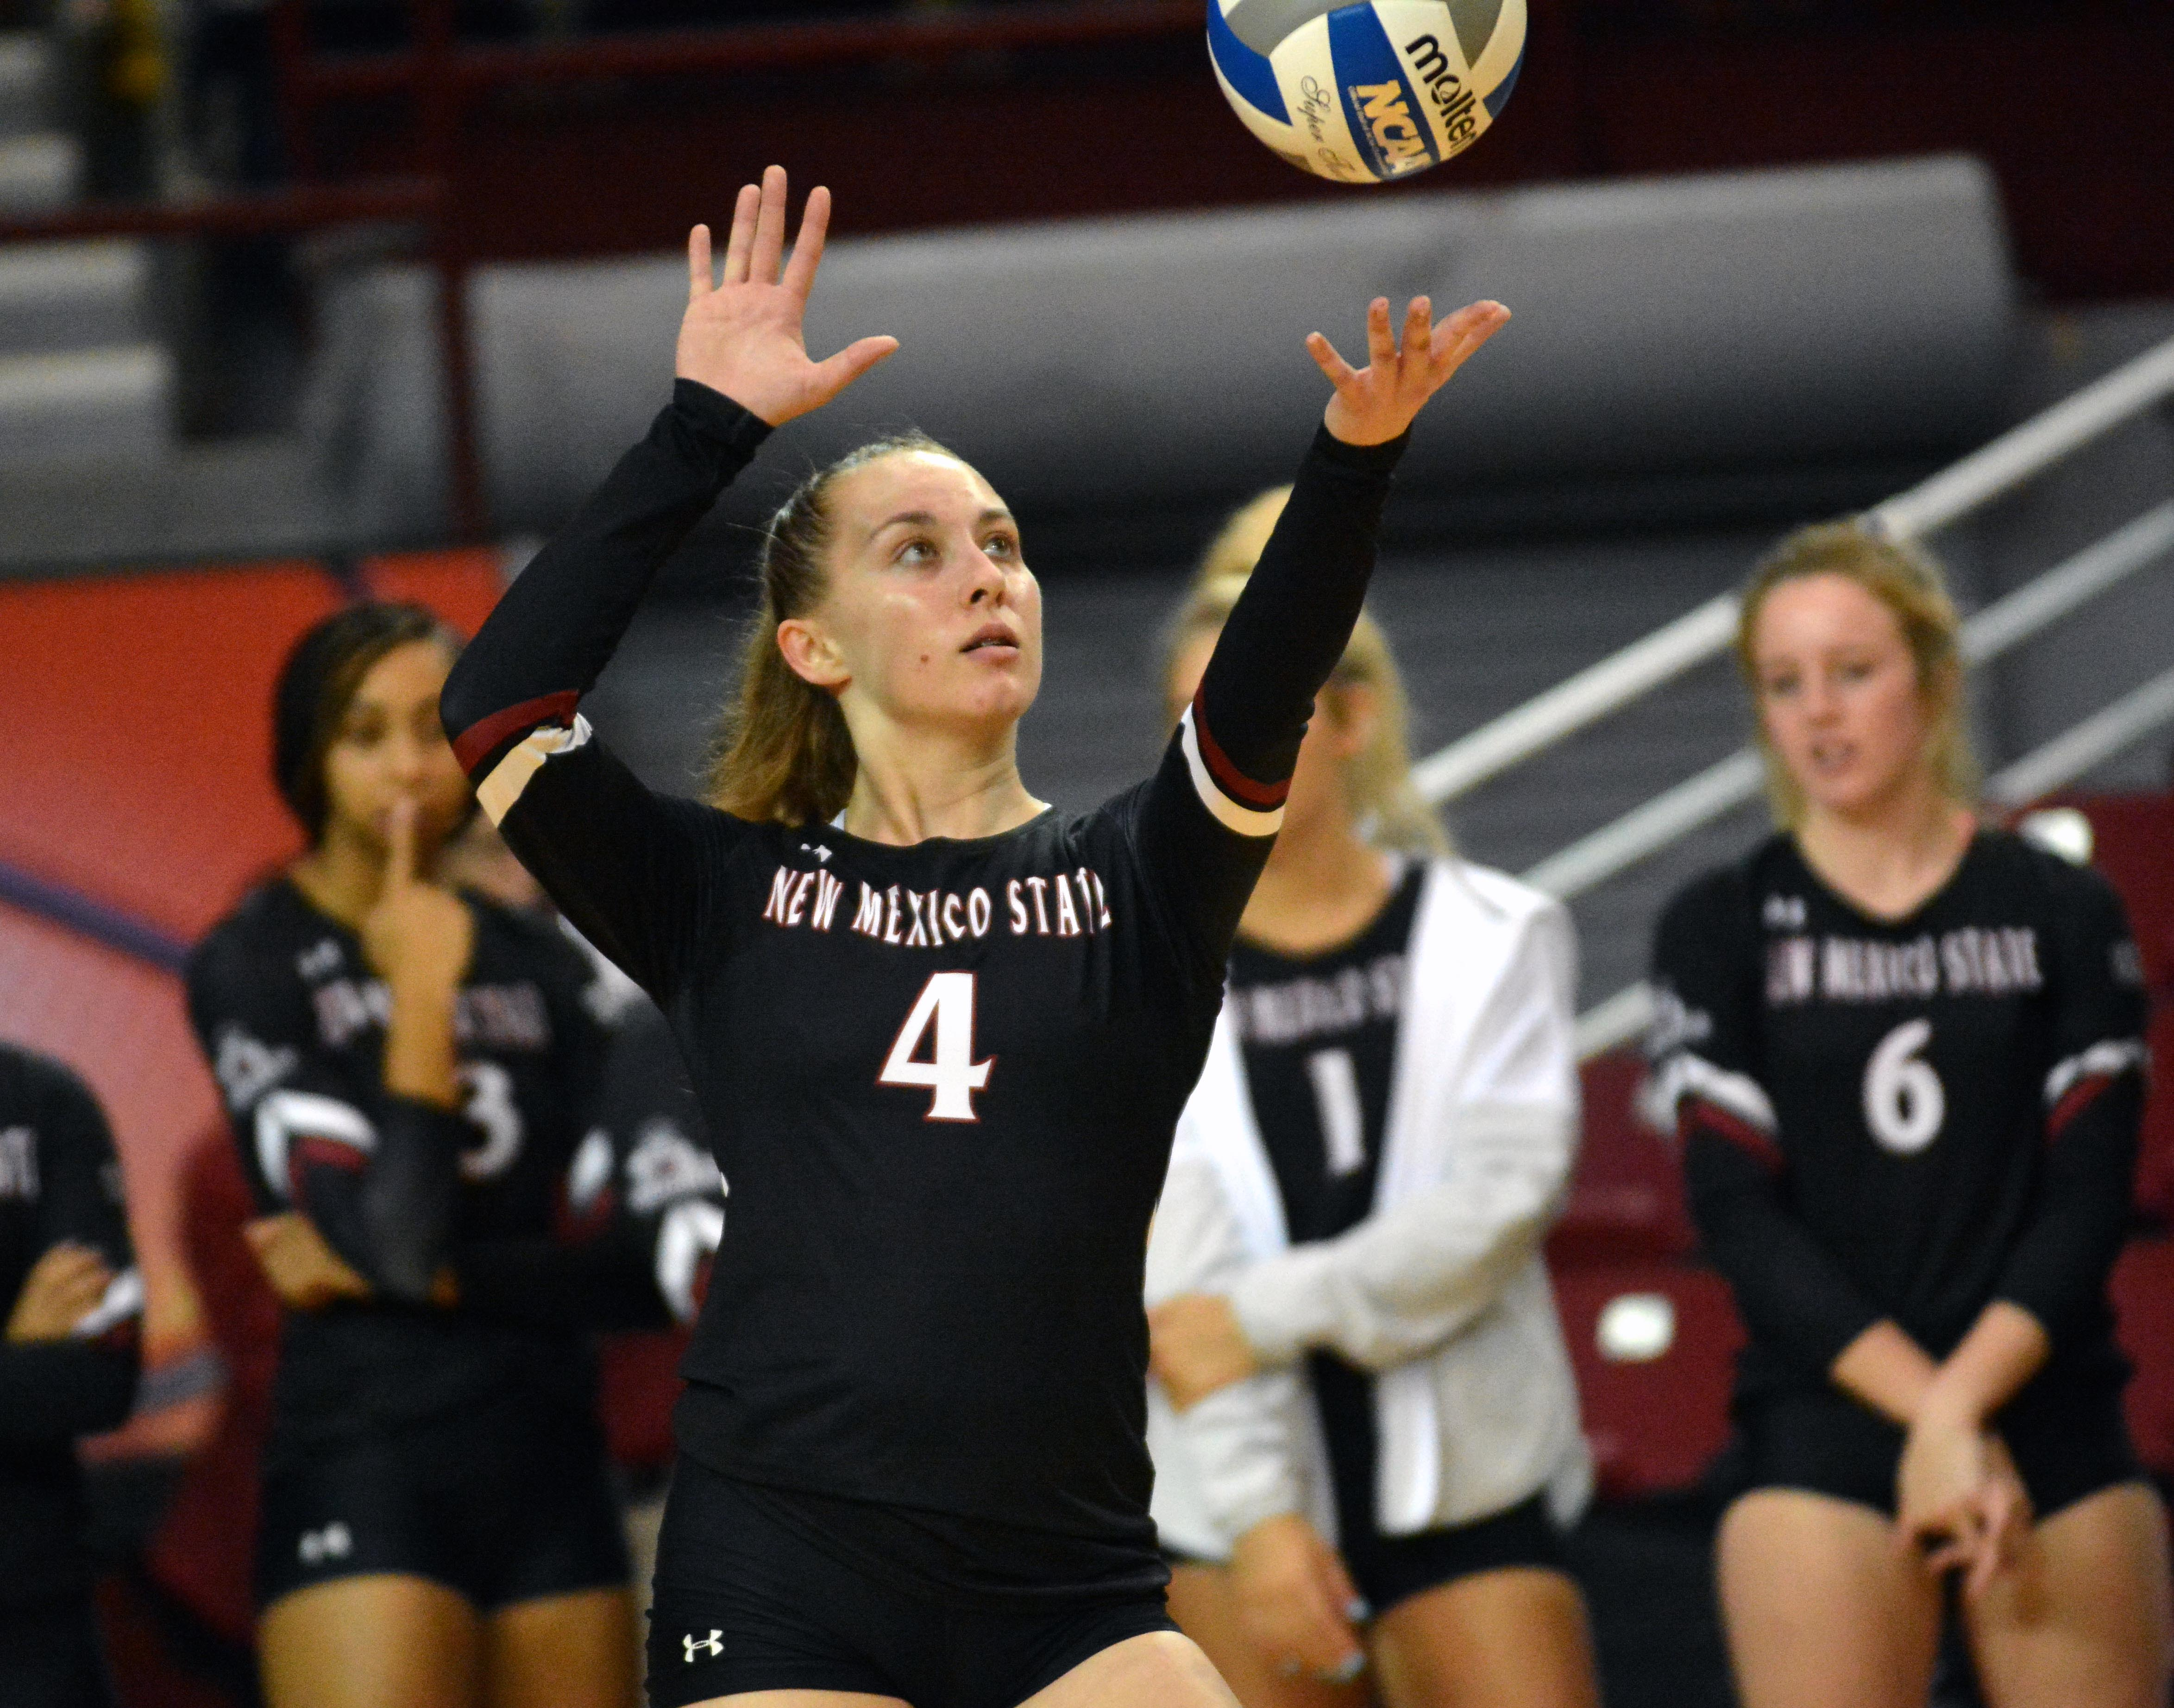 Volleyball: New Mexico State sweeps UNM » Albuquerque Journal